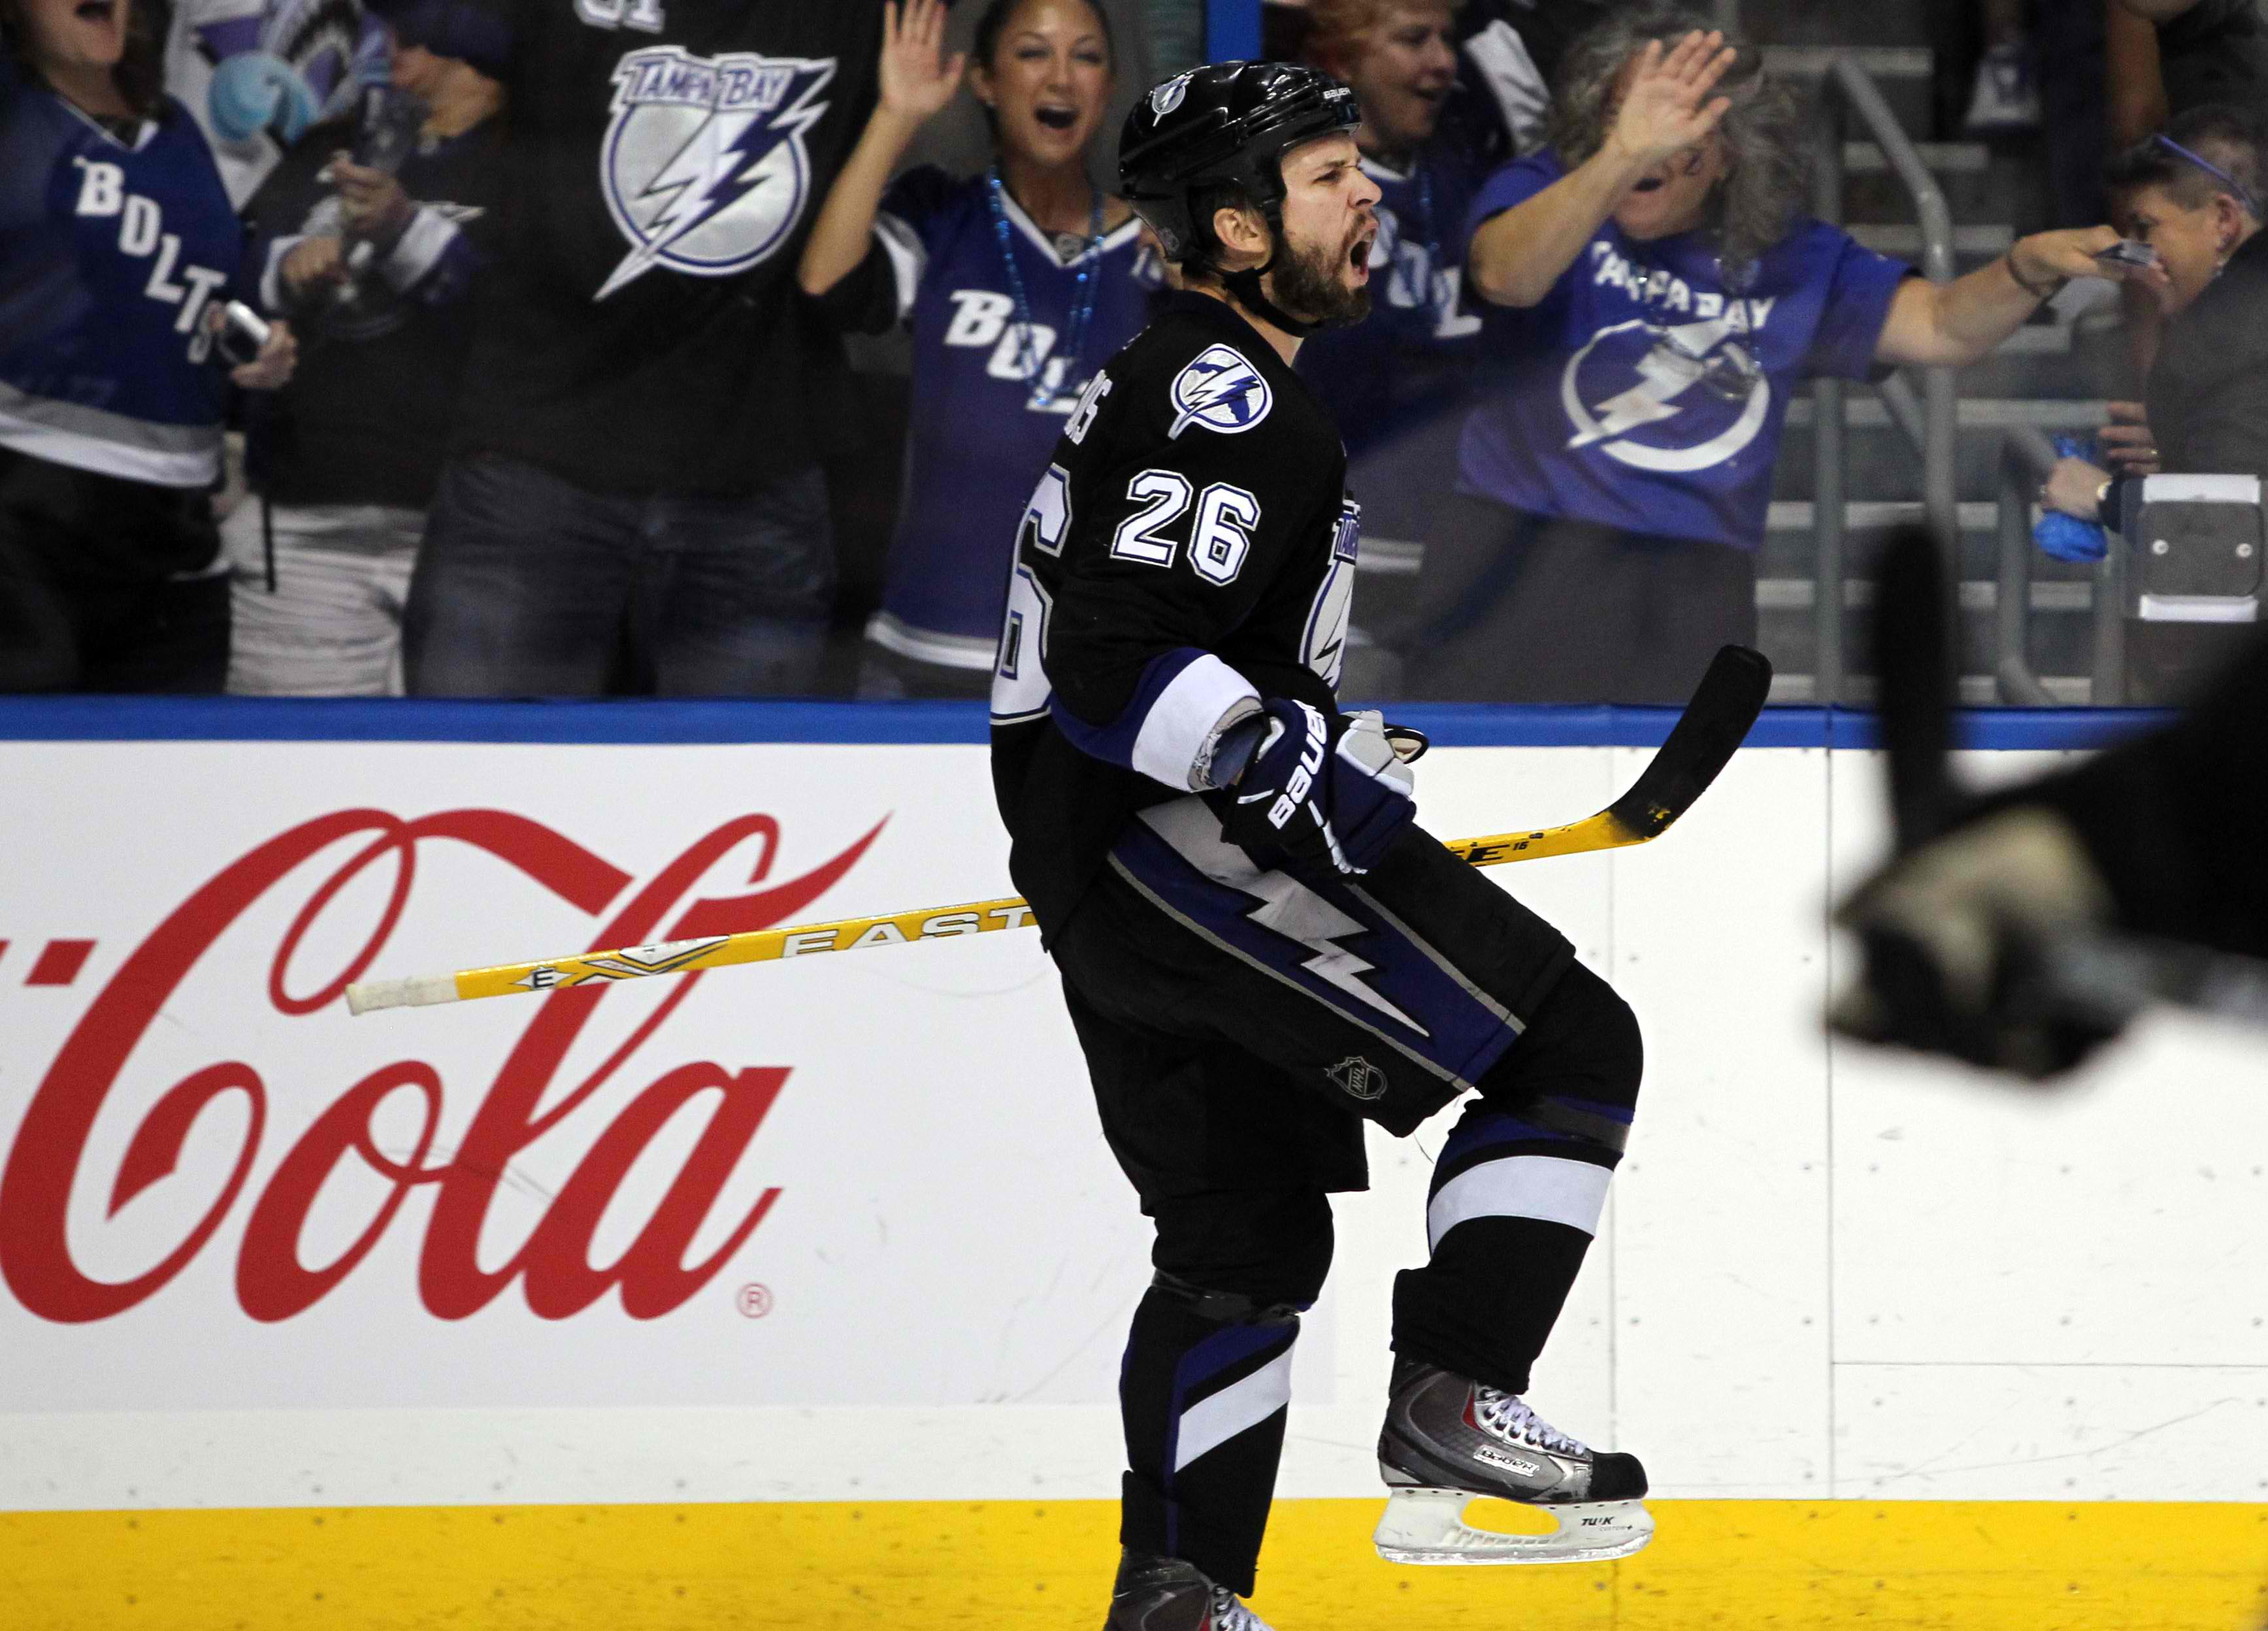 Marty St. Louis celebrates his empty net goal that got the fat lady up and the bus started for the Bruins. (photo by Kim Klement/US Presswire)